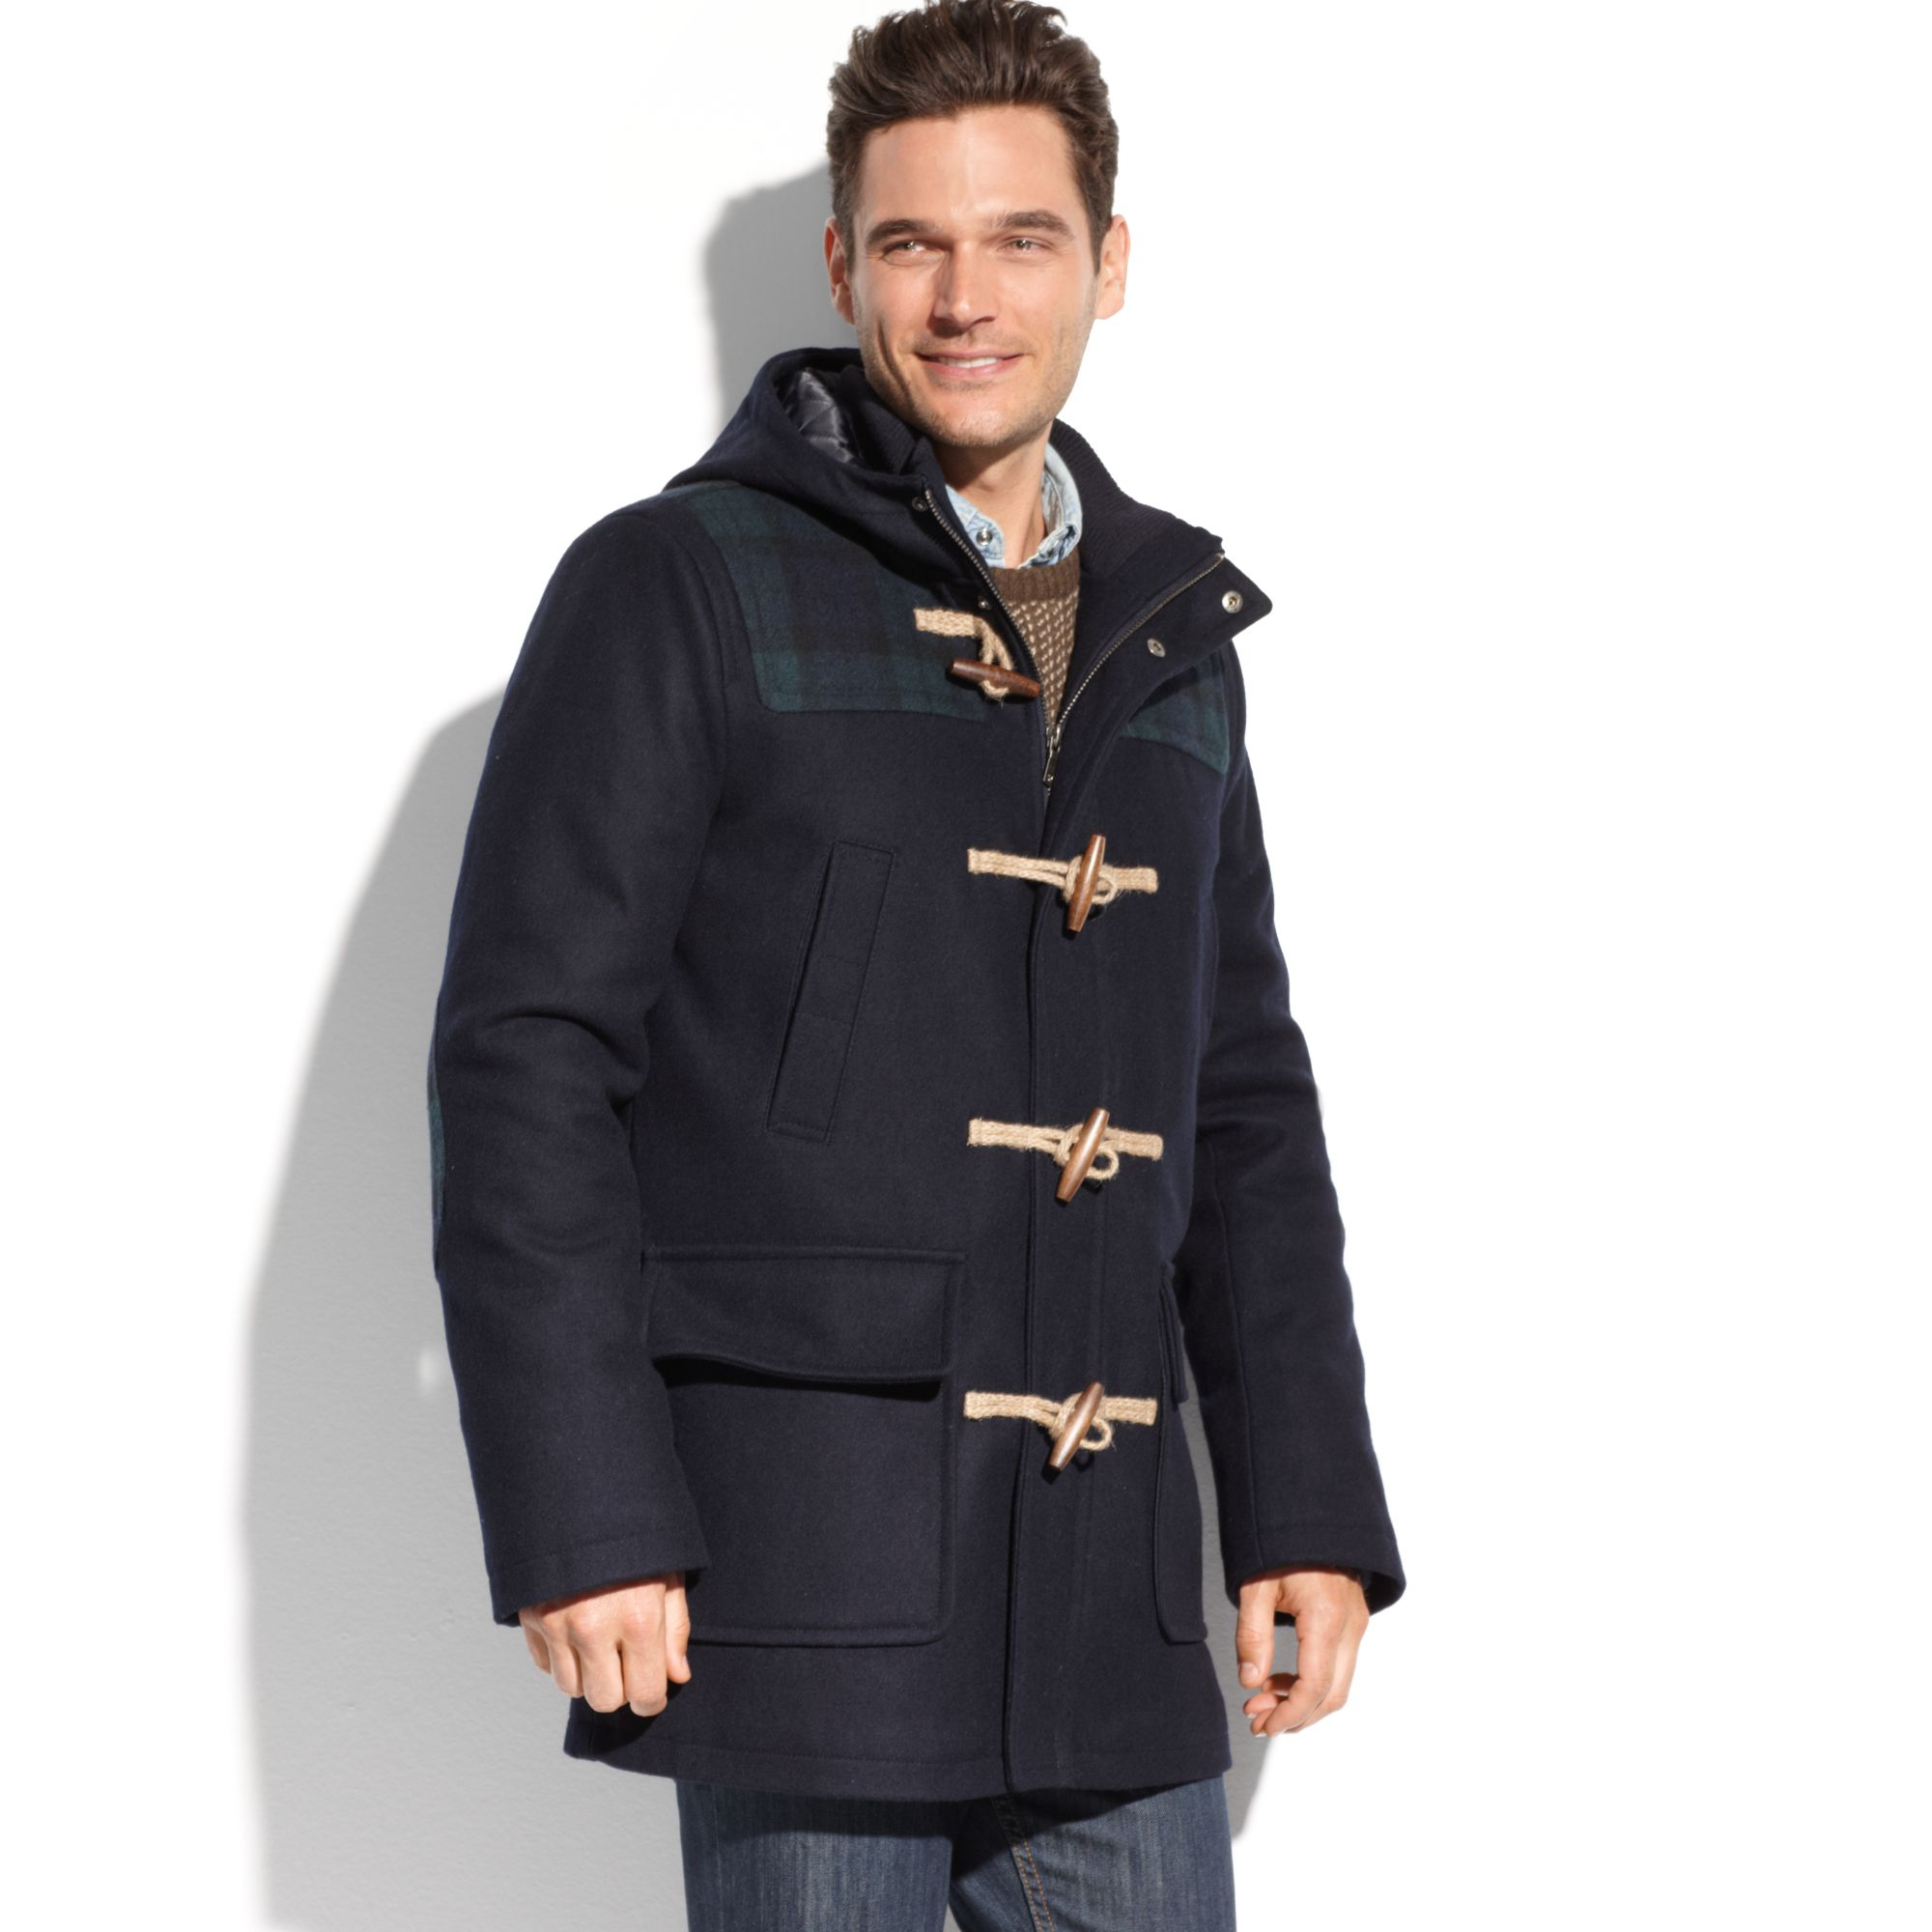 Men's Outerwear > mens wool pea coats. Narrow Search Results. By Category. Clothing & Accessories. Clothing. Outerwear. Men's Outerwear. Women's Outerwear. Blazers & Suits. mens wool car coat womens hooded wool pea coat womens wool pea coat xs wool pea coat wool pea coat men.